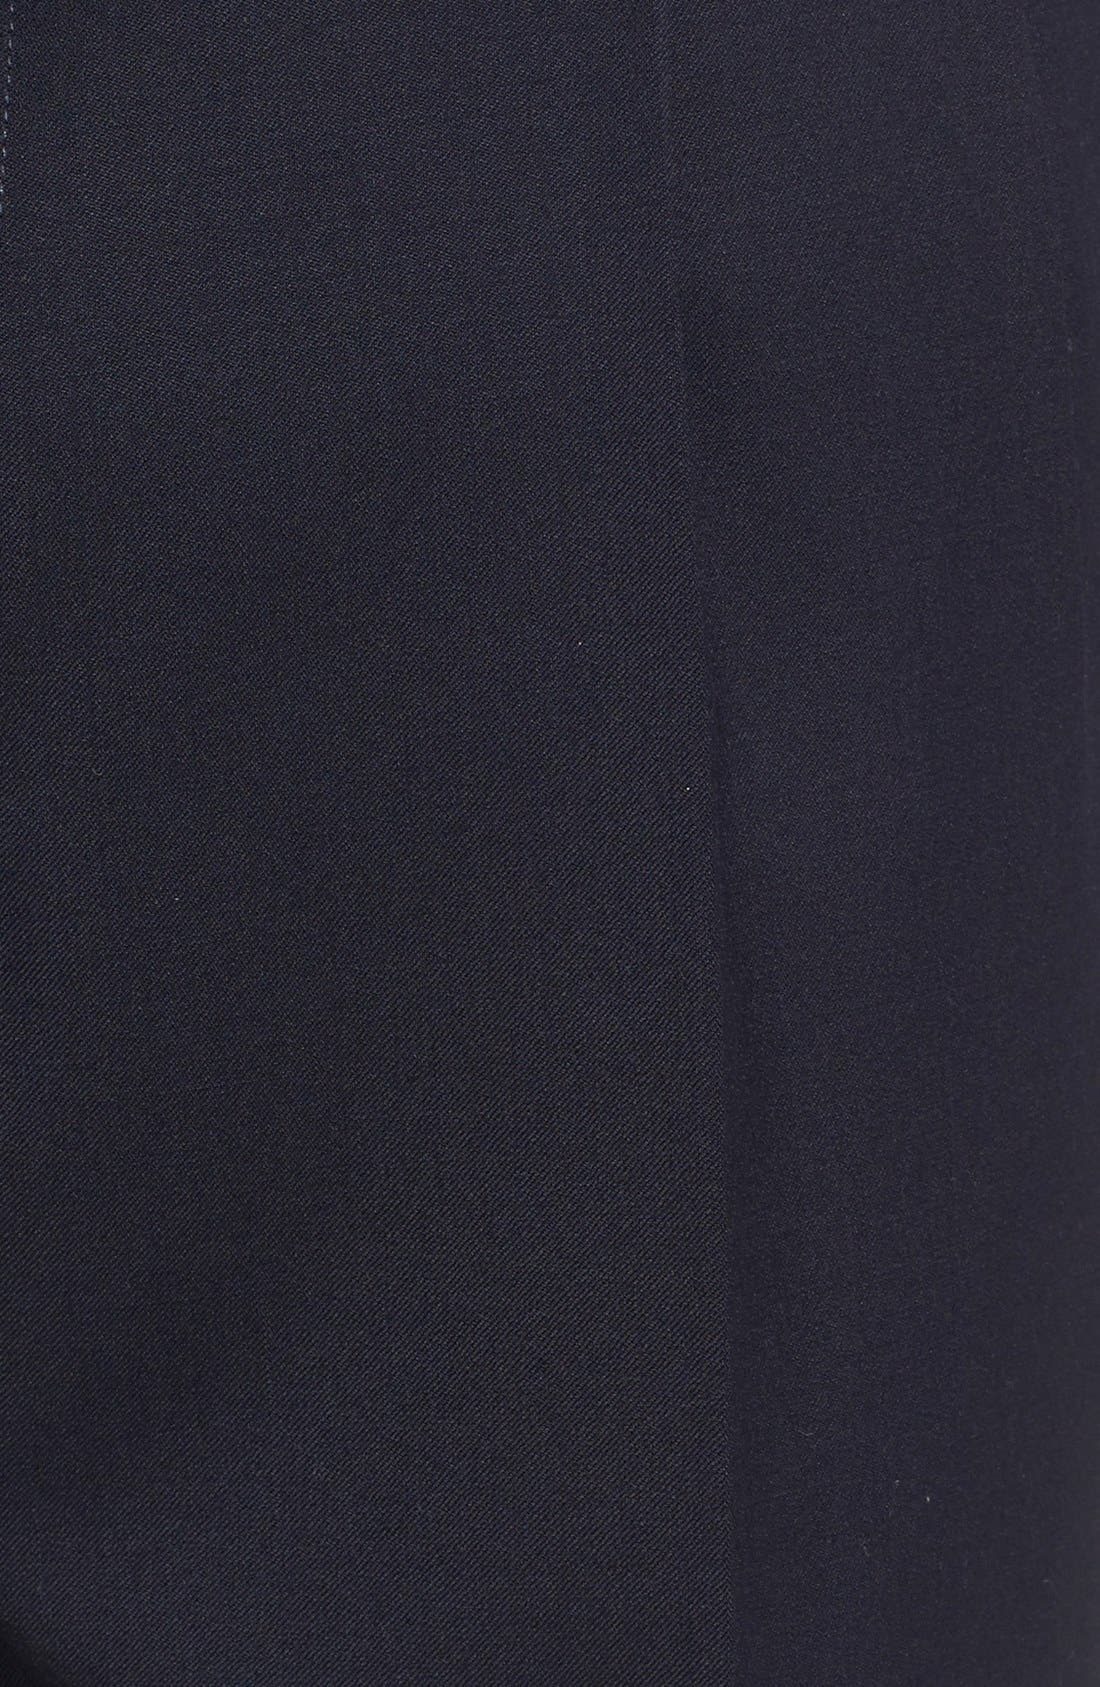 Pleated Solid Wool Trousers,                             Alternate thumbnail 64, color,